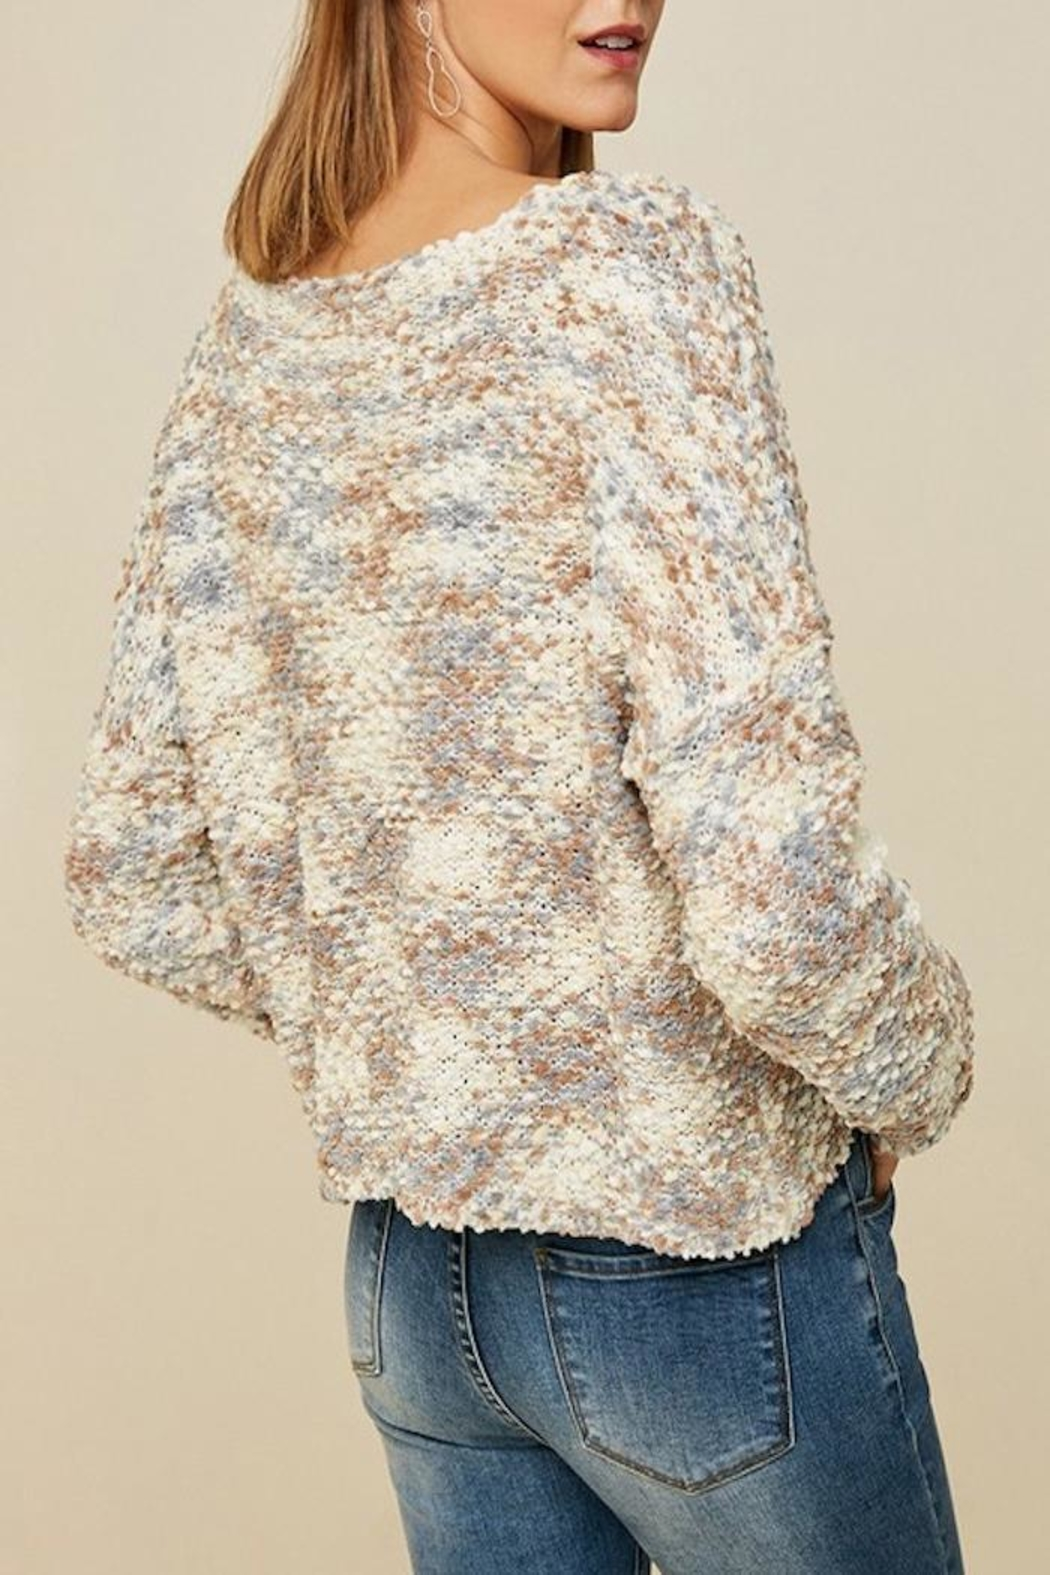 Apricot Lane Cappuccino Sweater - Side Cropped Image